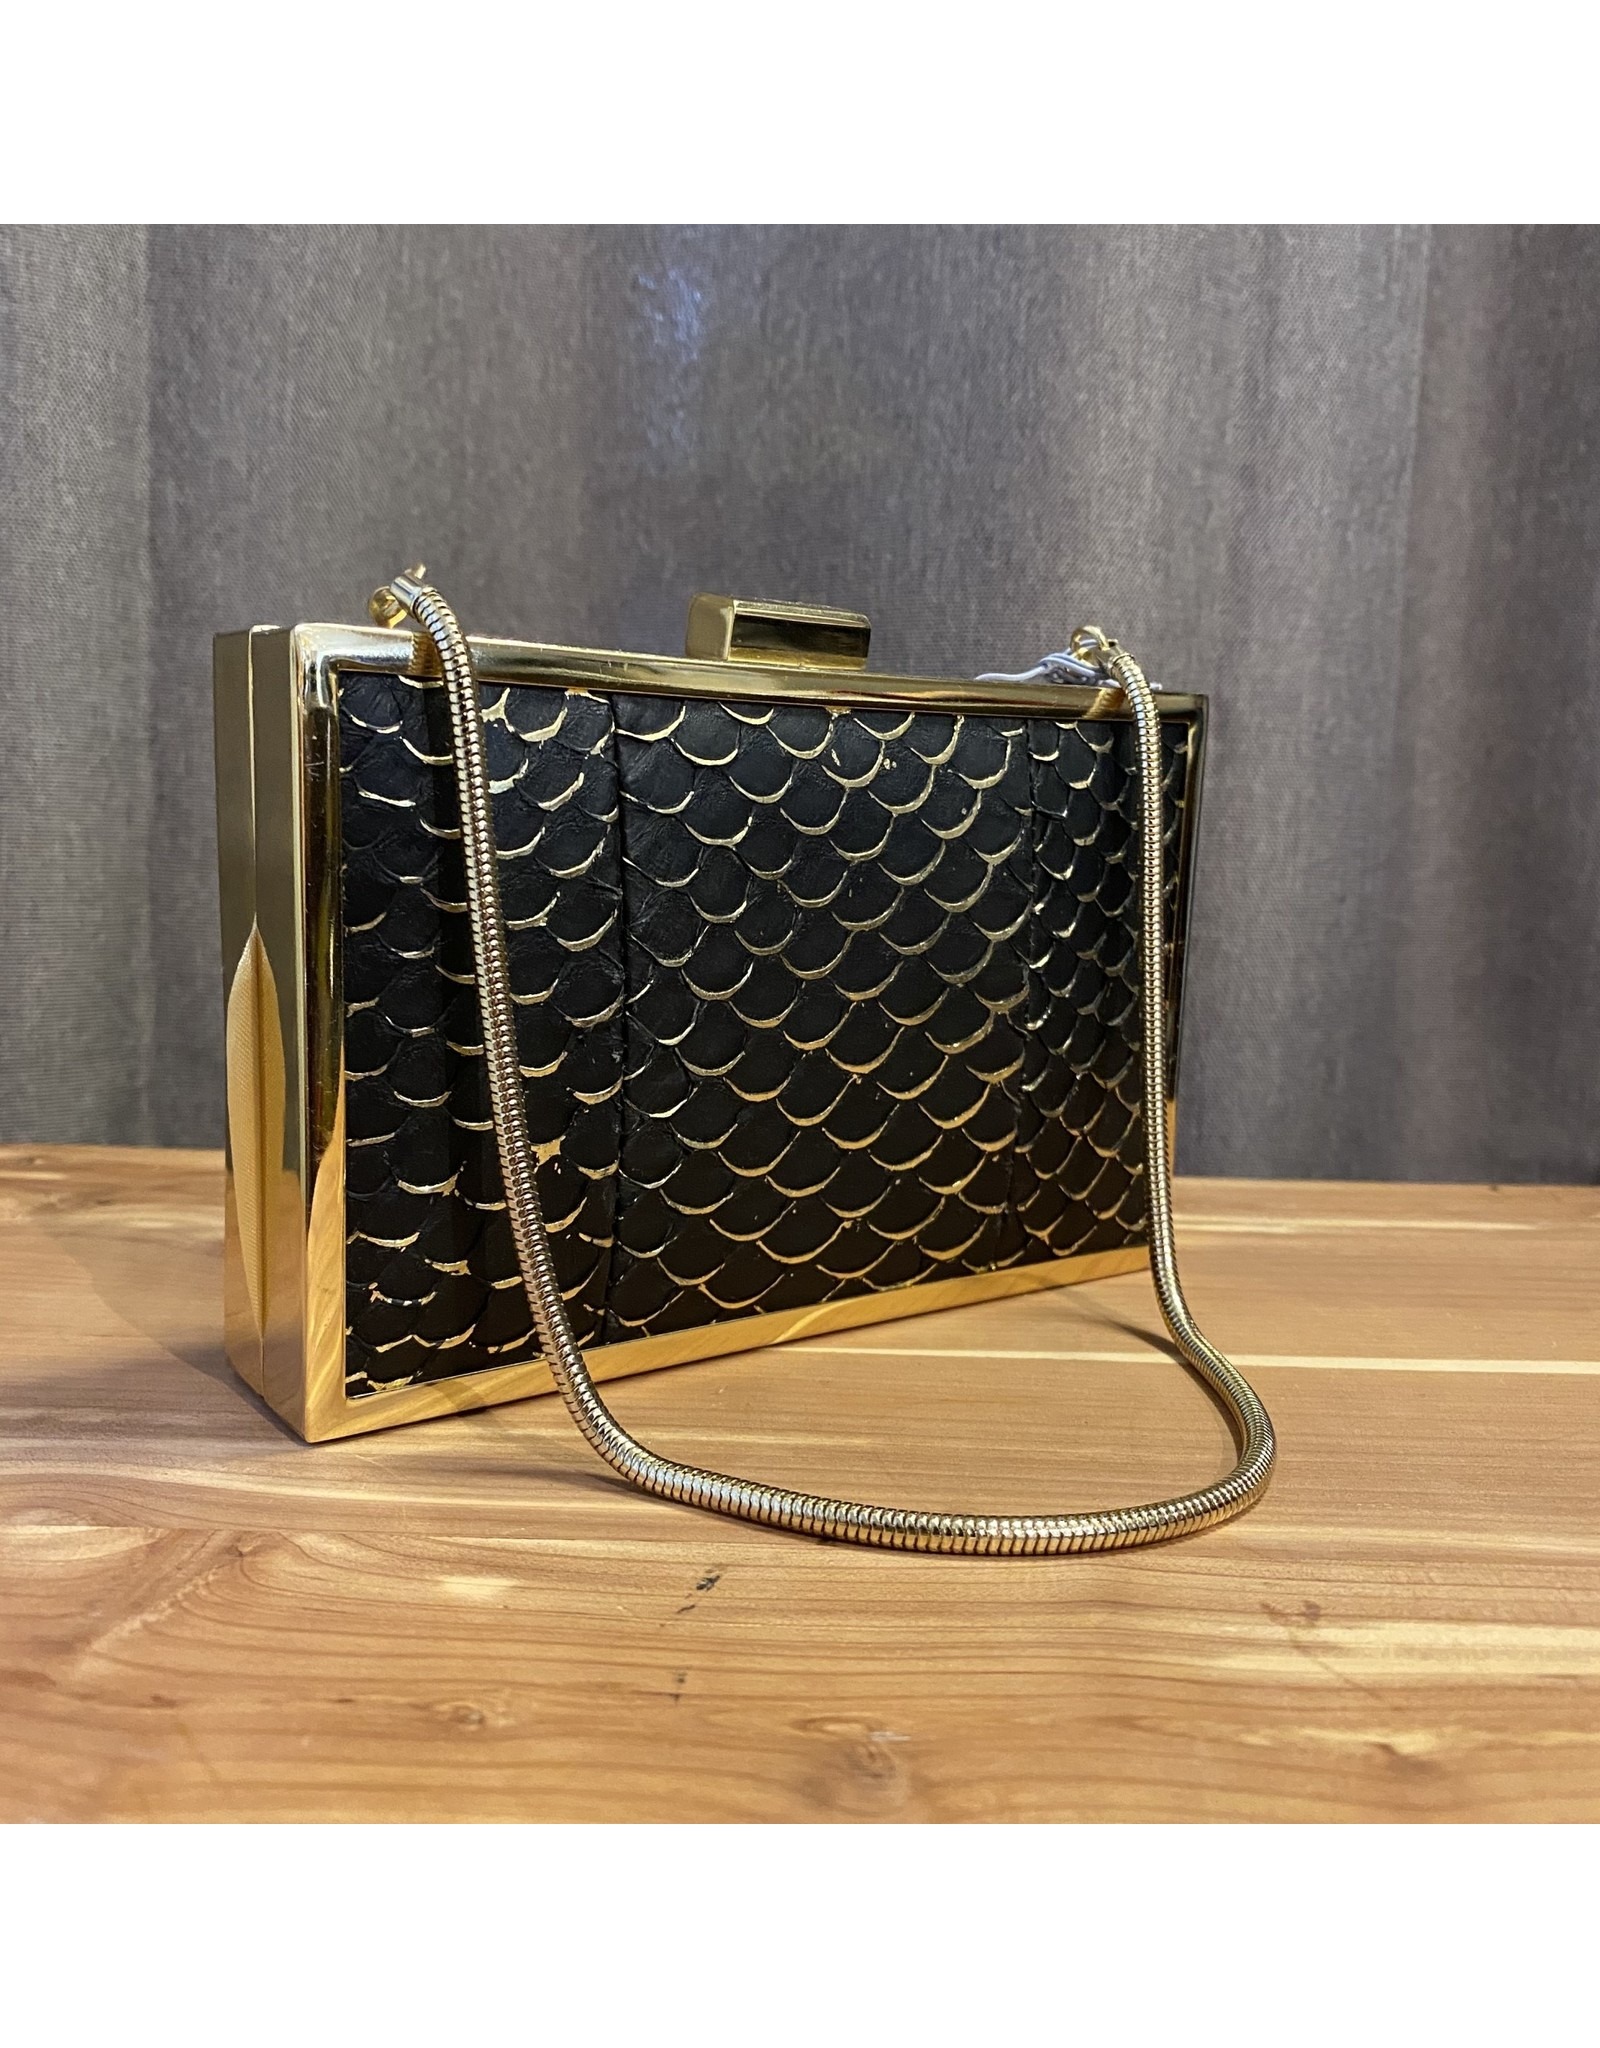 Inge Christopher Corsica Black and Gold Clutch